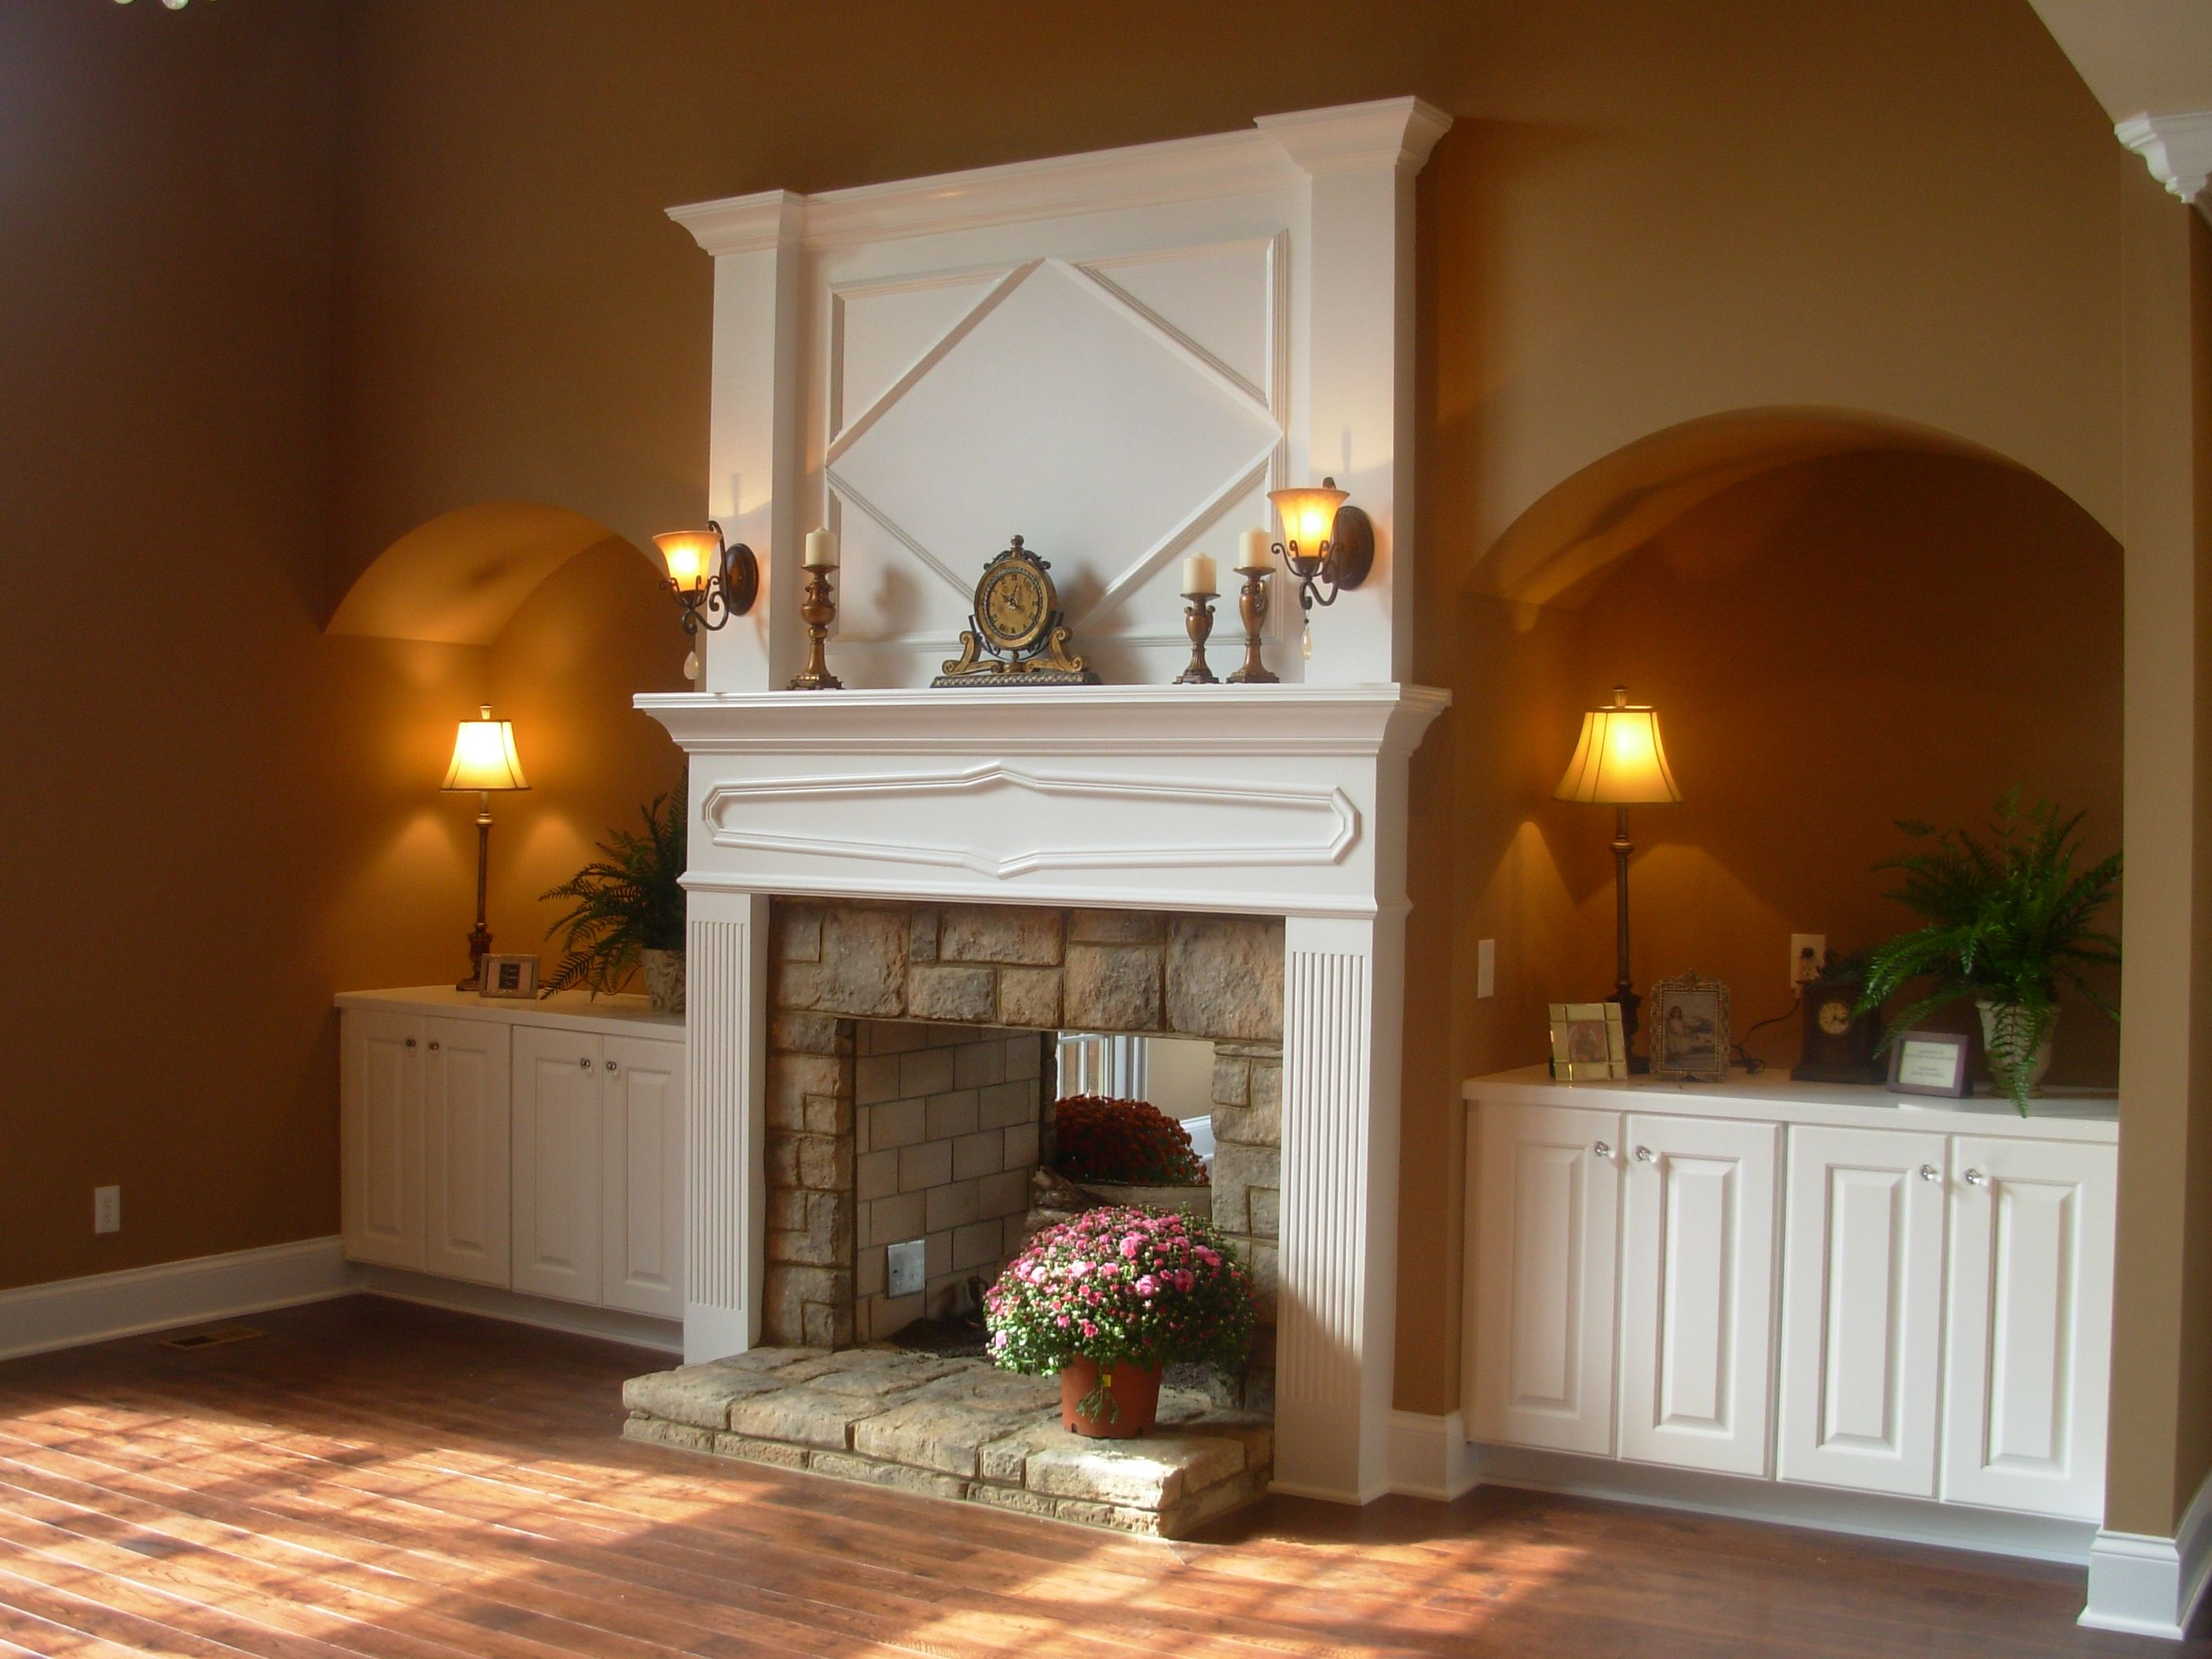 Genial Classic Mantel Design By Luxe Homes U0026 Design, Double Mantel, Jefferson Park  Knoxville